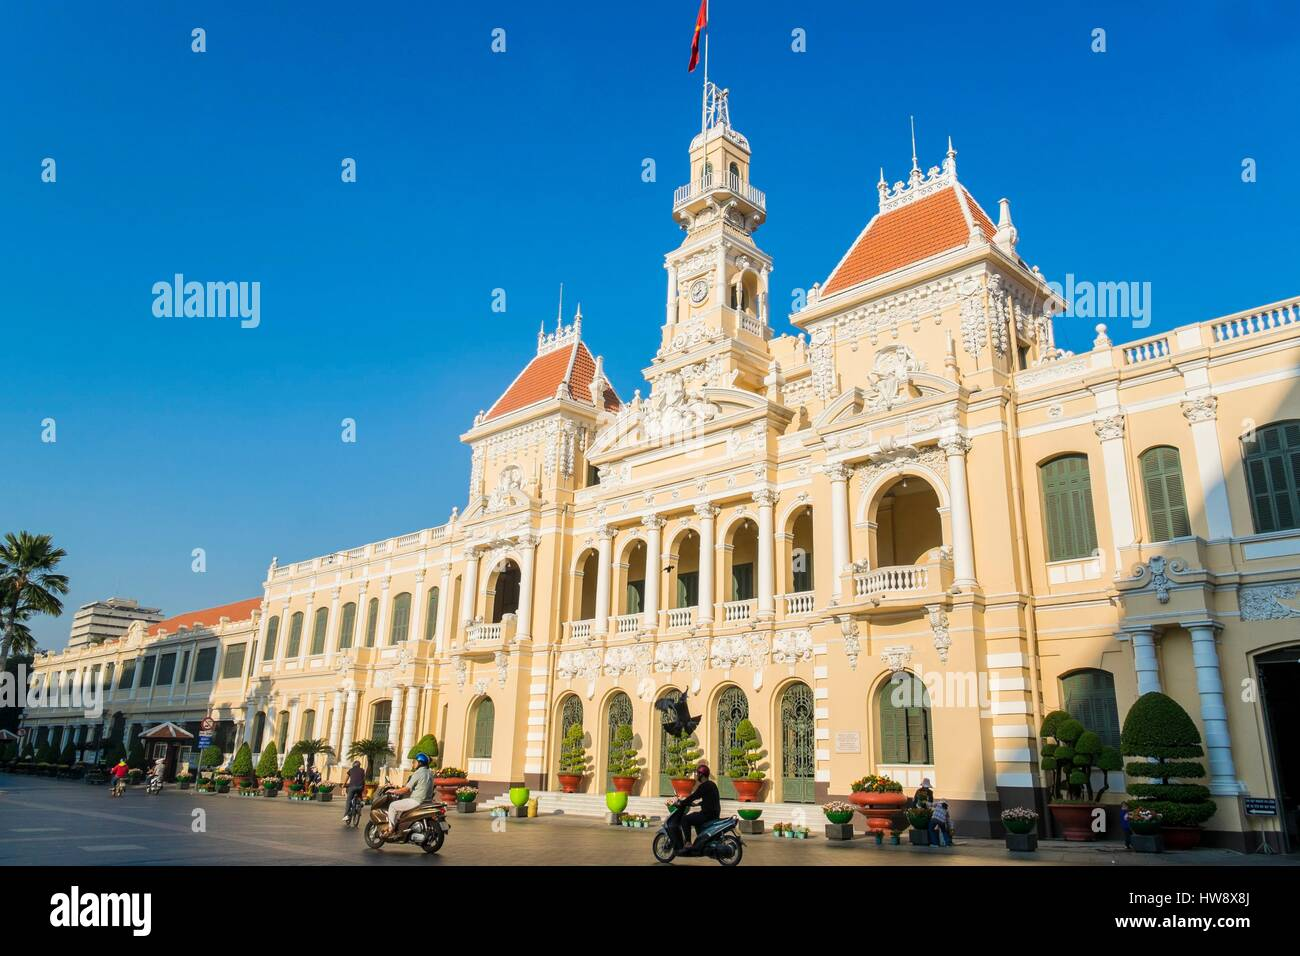 Vietnam, Ho Chi Minh City (Saigon), City Hall - Stock Image